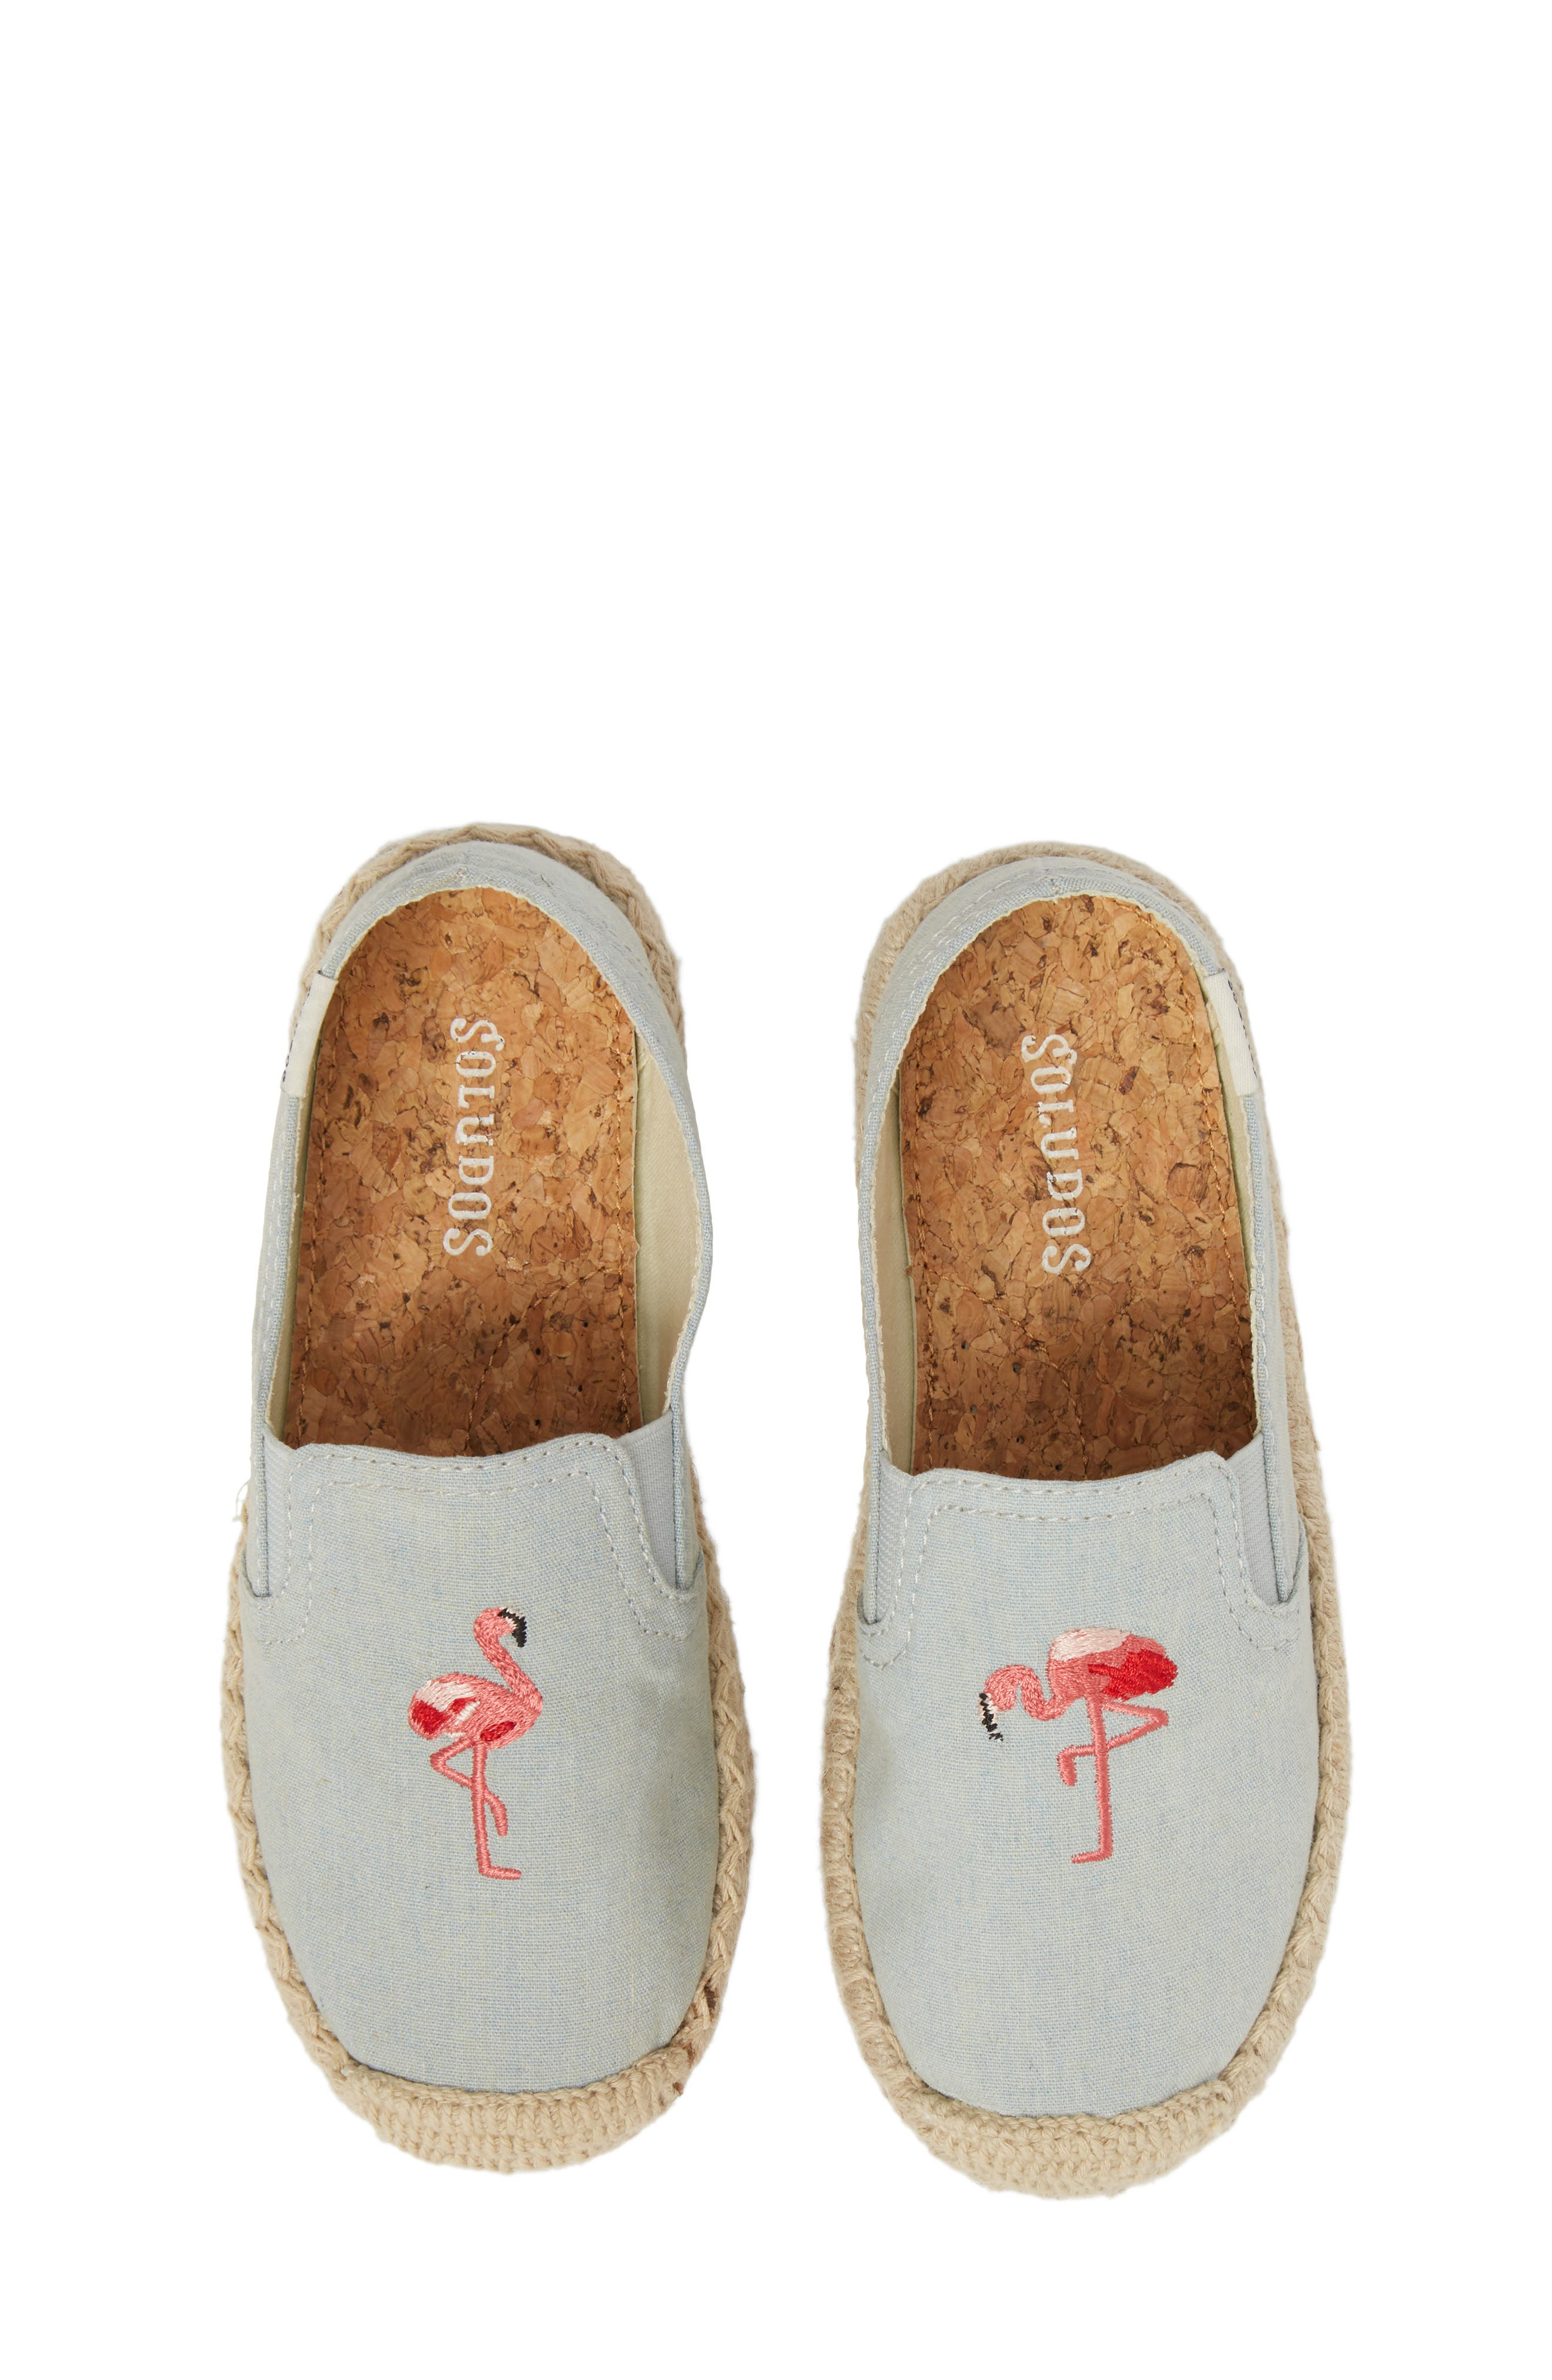 SOLUDOS, Flamingo Embroidered Espadrille, Main thumbnail 1, color, CHAMBRAY